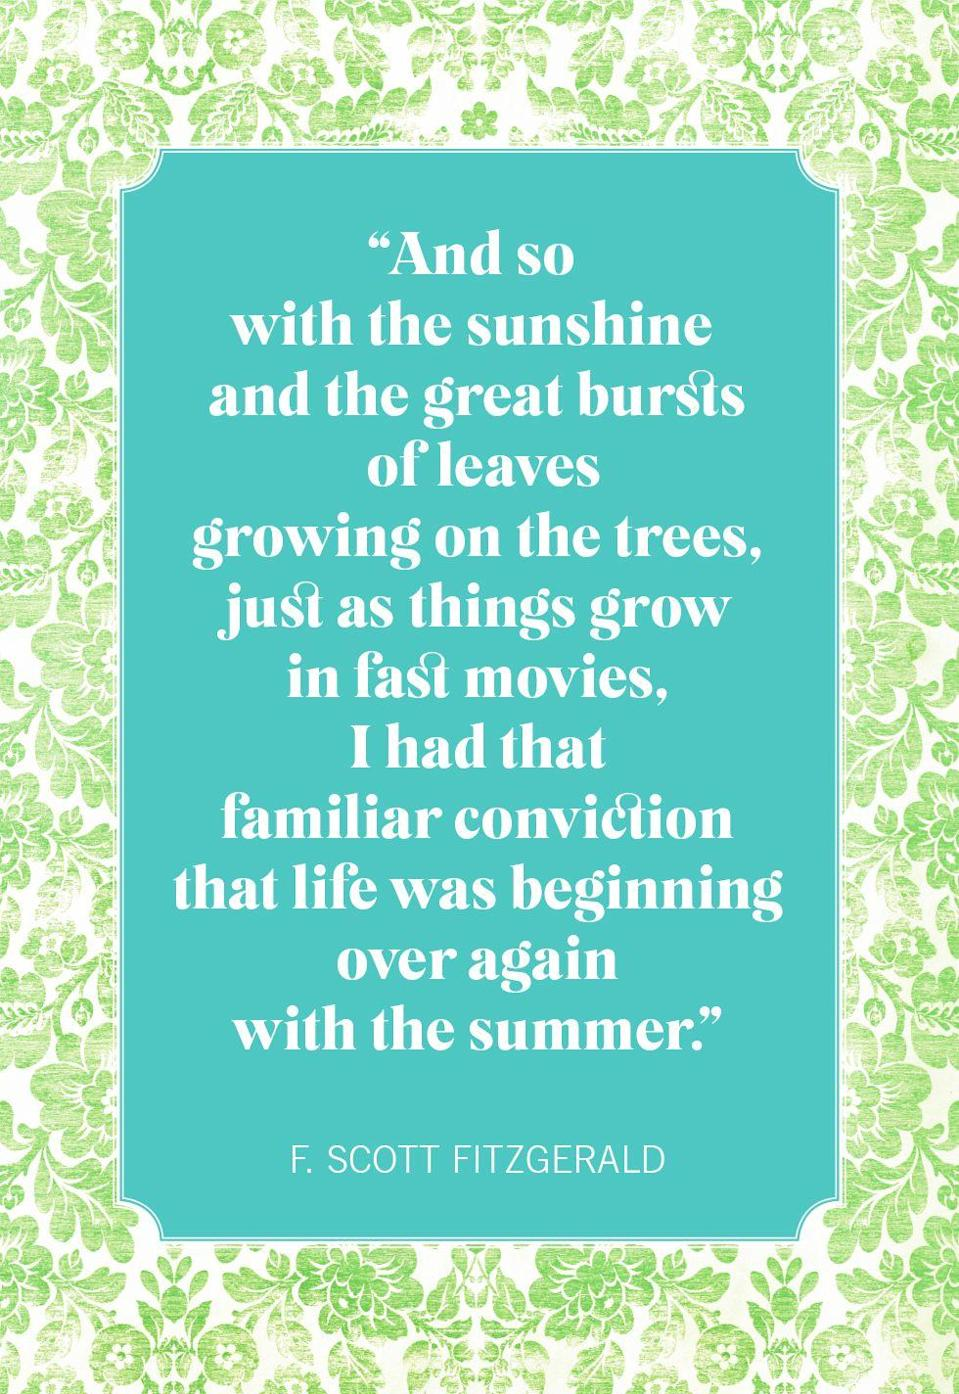 """<p>""""And so with the sunshine and the great bursts of leaves growing on the trees, just as things grow in fast movies, I had that familiar conviction that life was beginning over again with the summer.""""</p>"""